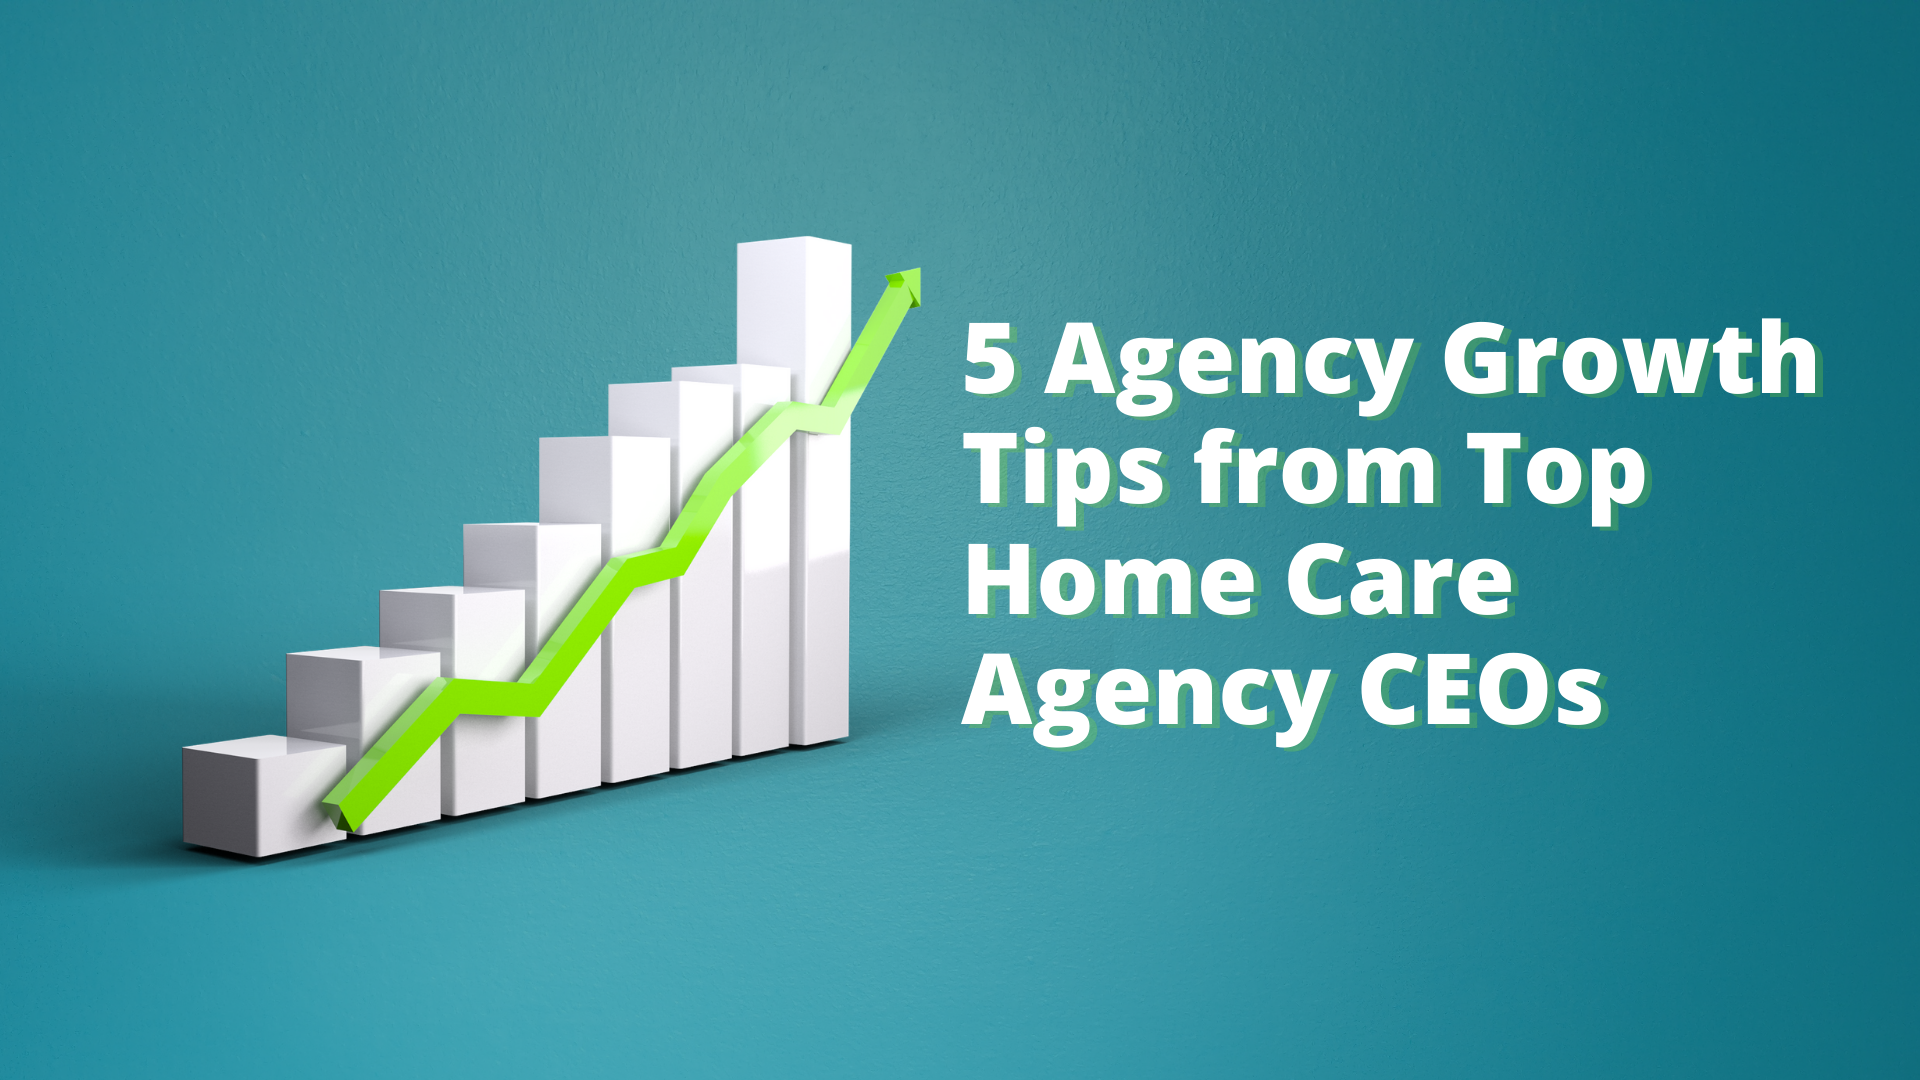 5 Agency Growth Tips from Top Home Care Agency CEOs